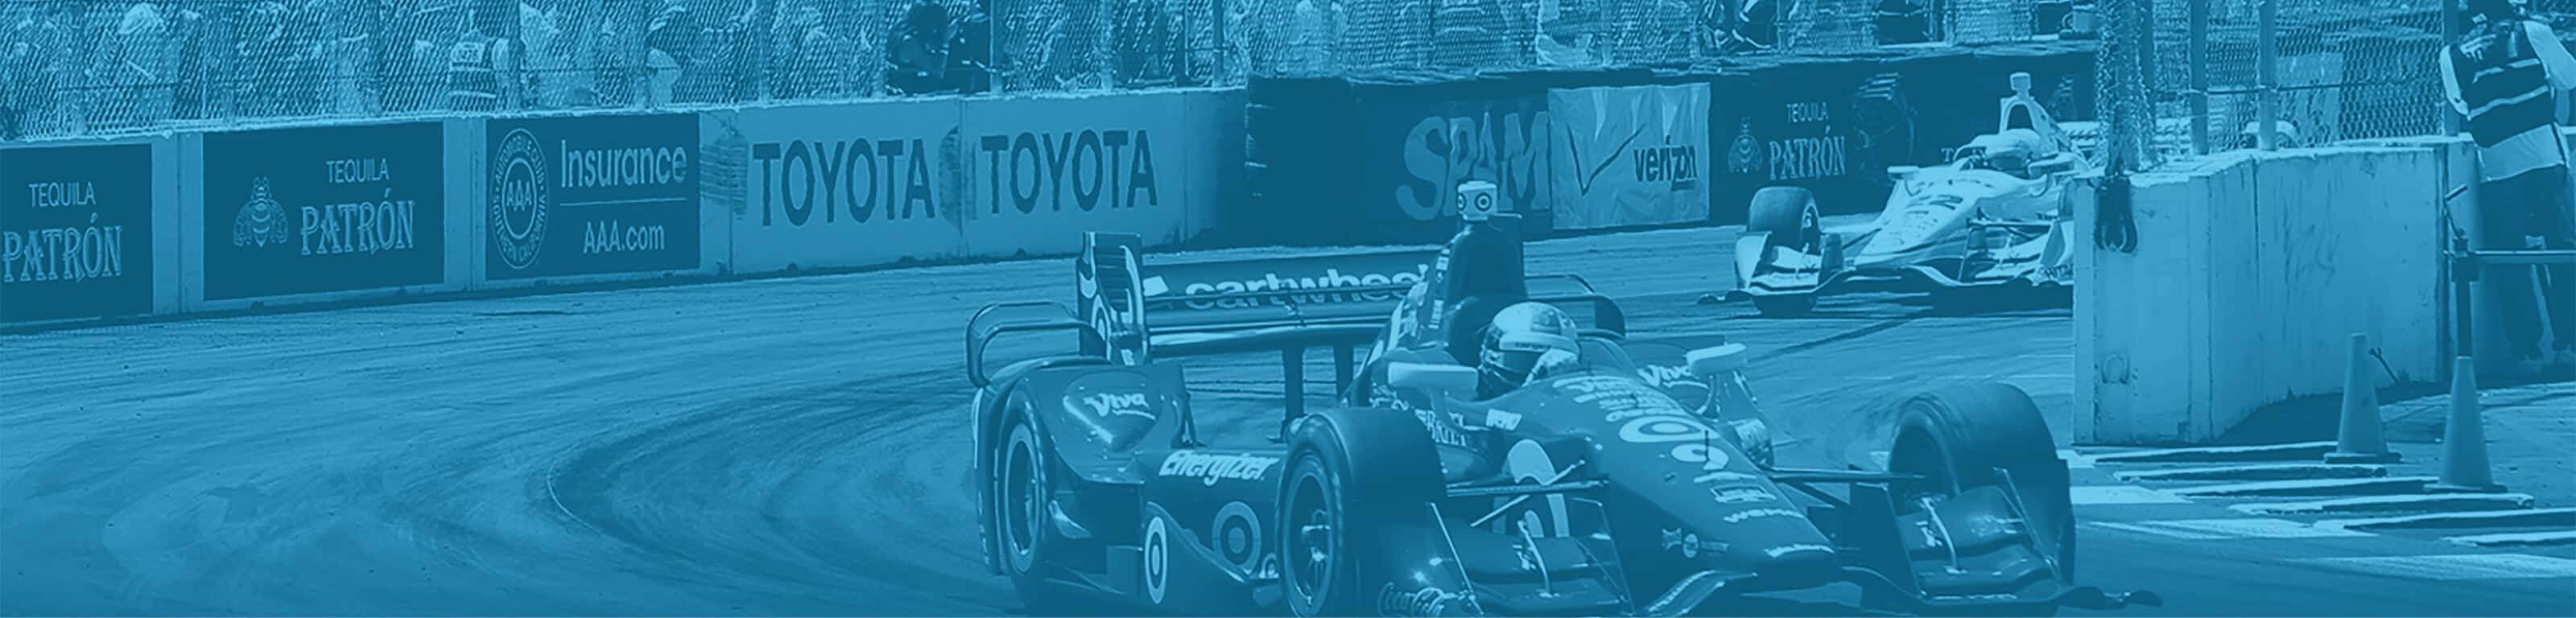 Long Beach Toyota Grand Prix